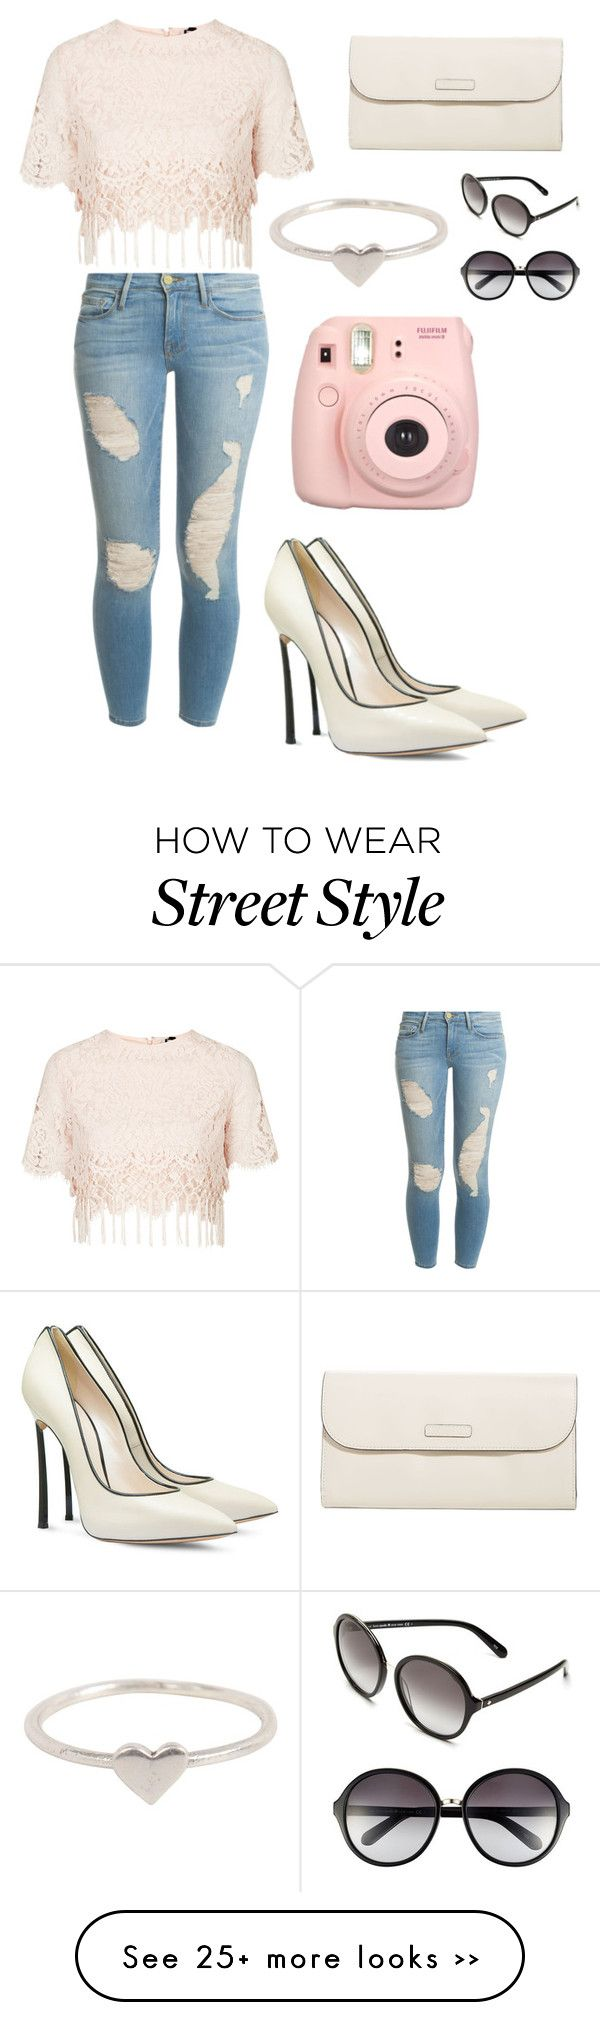 """Street style"" by lmstencie3 on Polyvore"